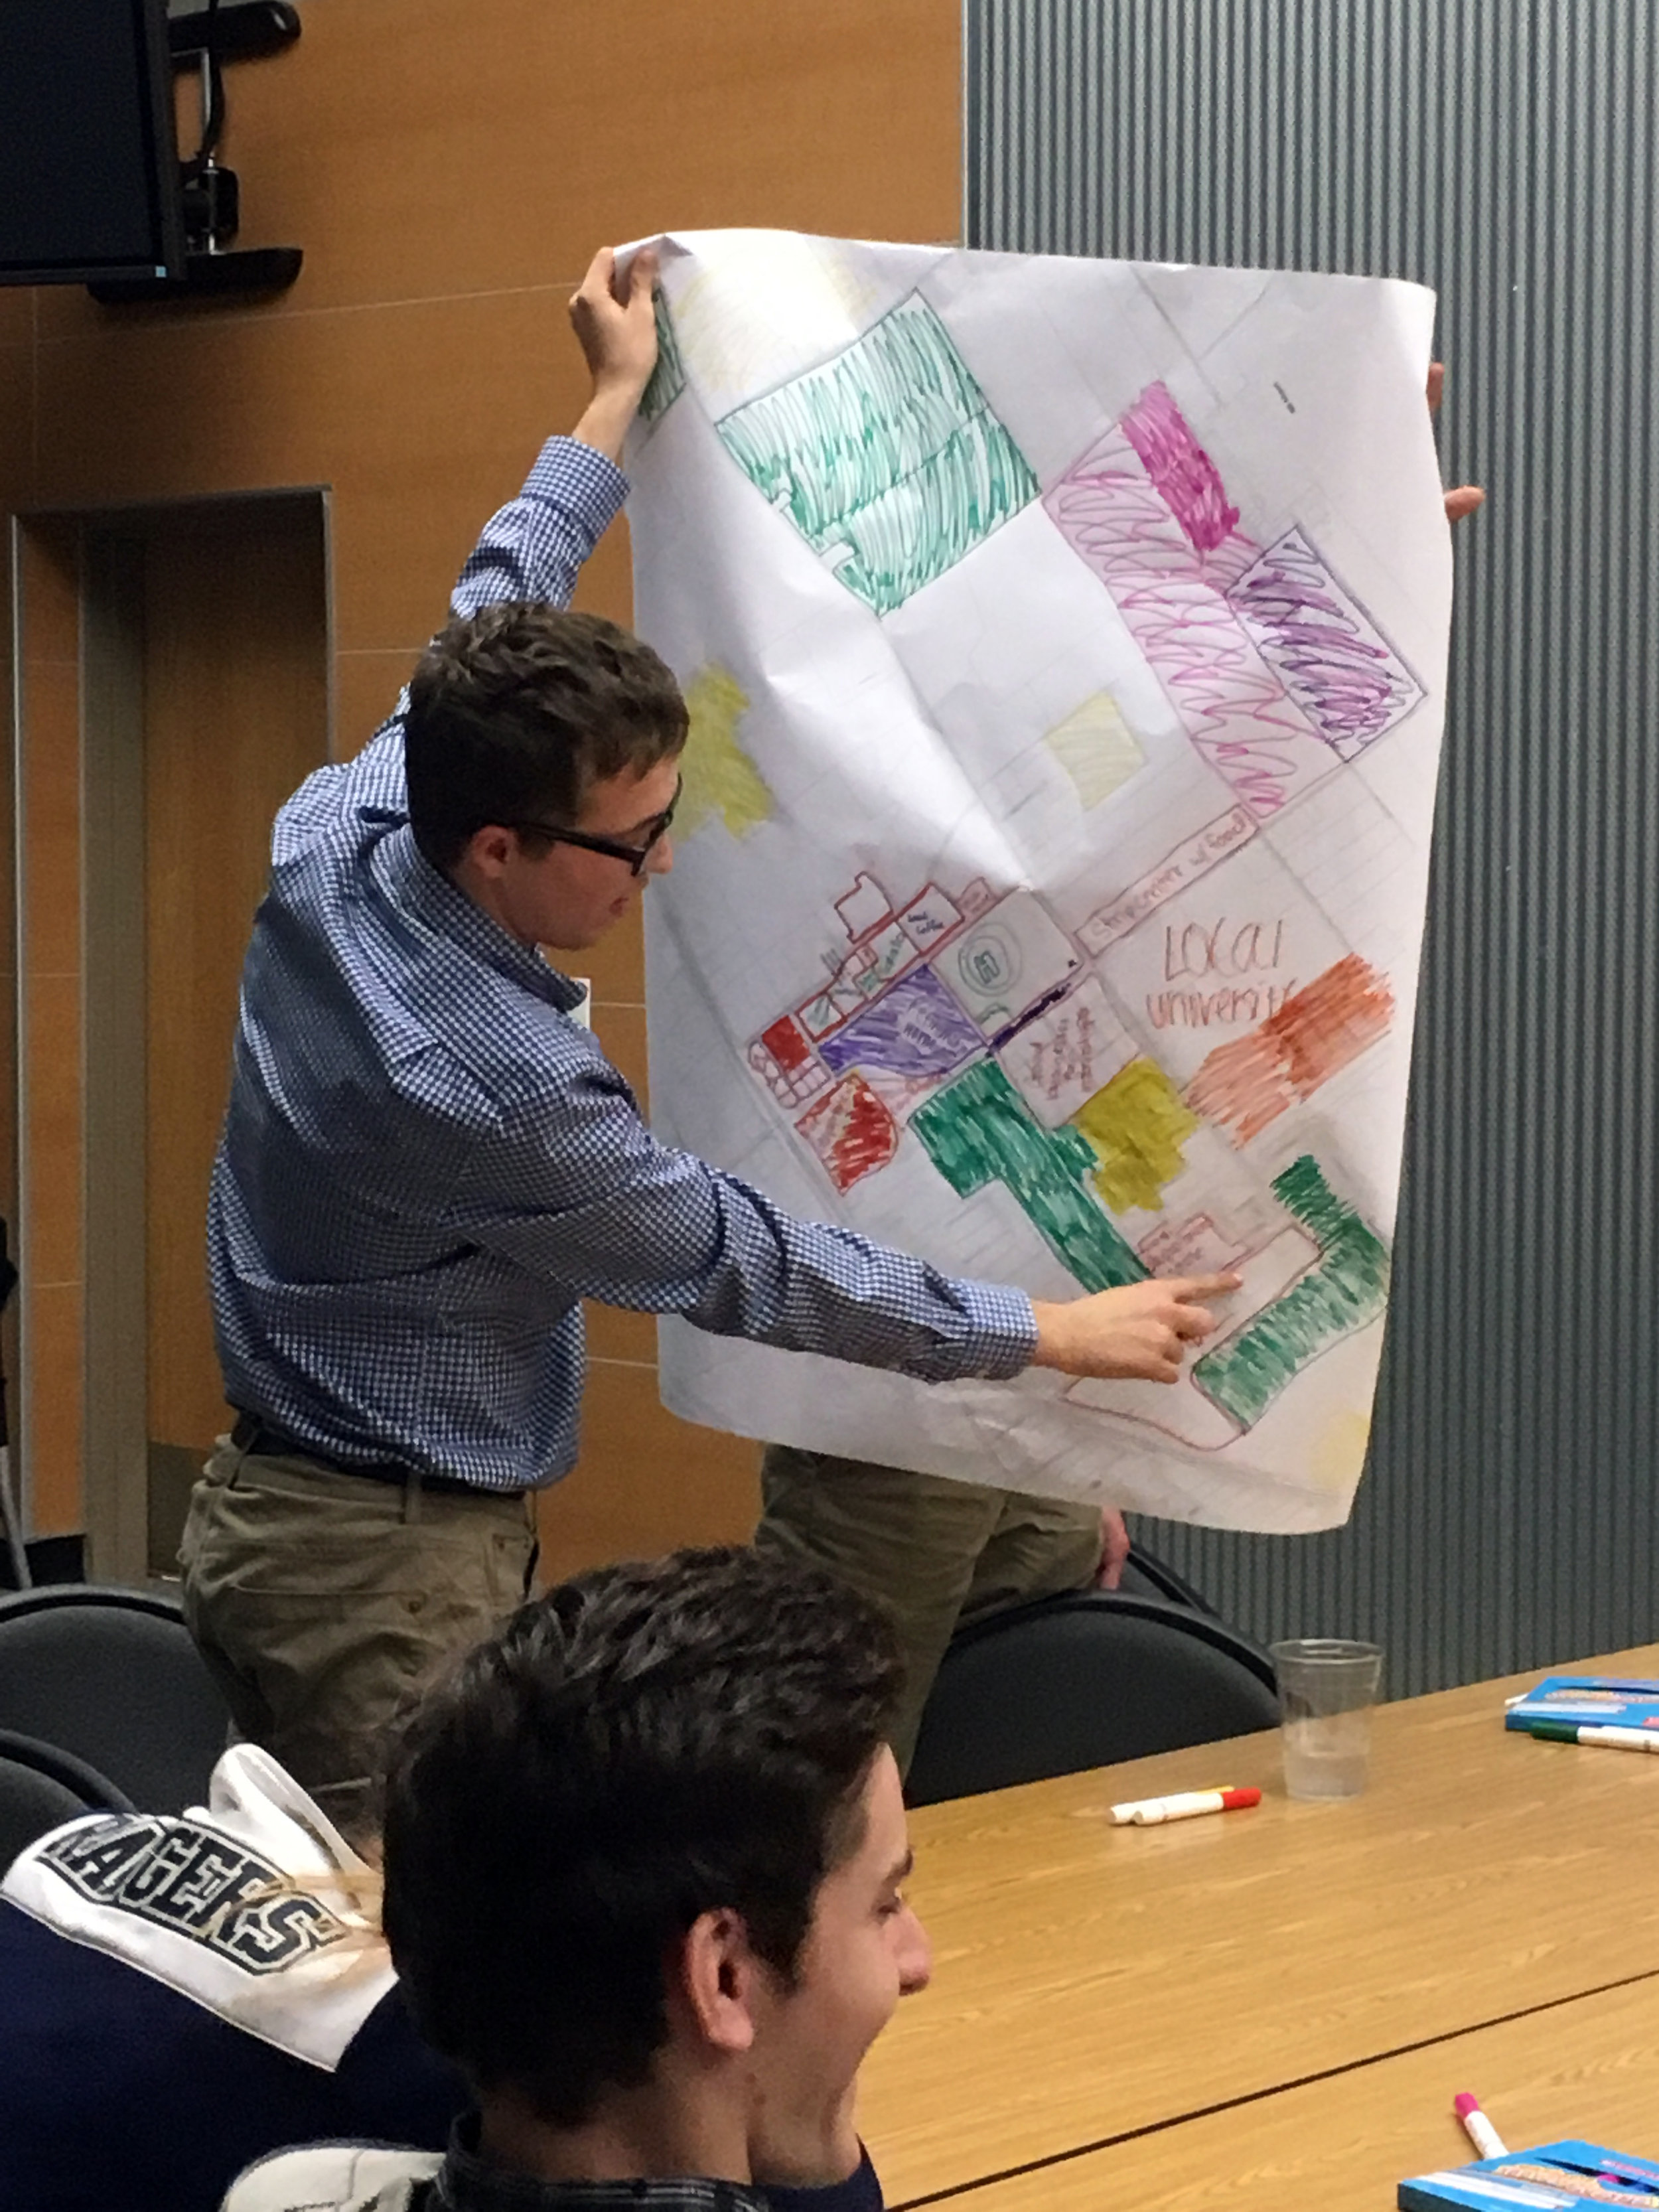 Then, each student team shared their visions and land use strategies with the group.